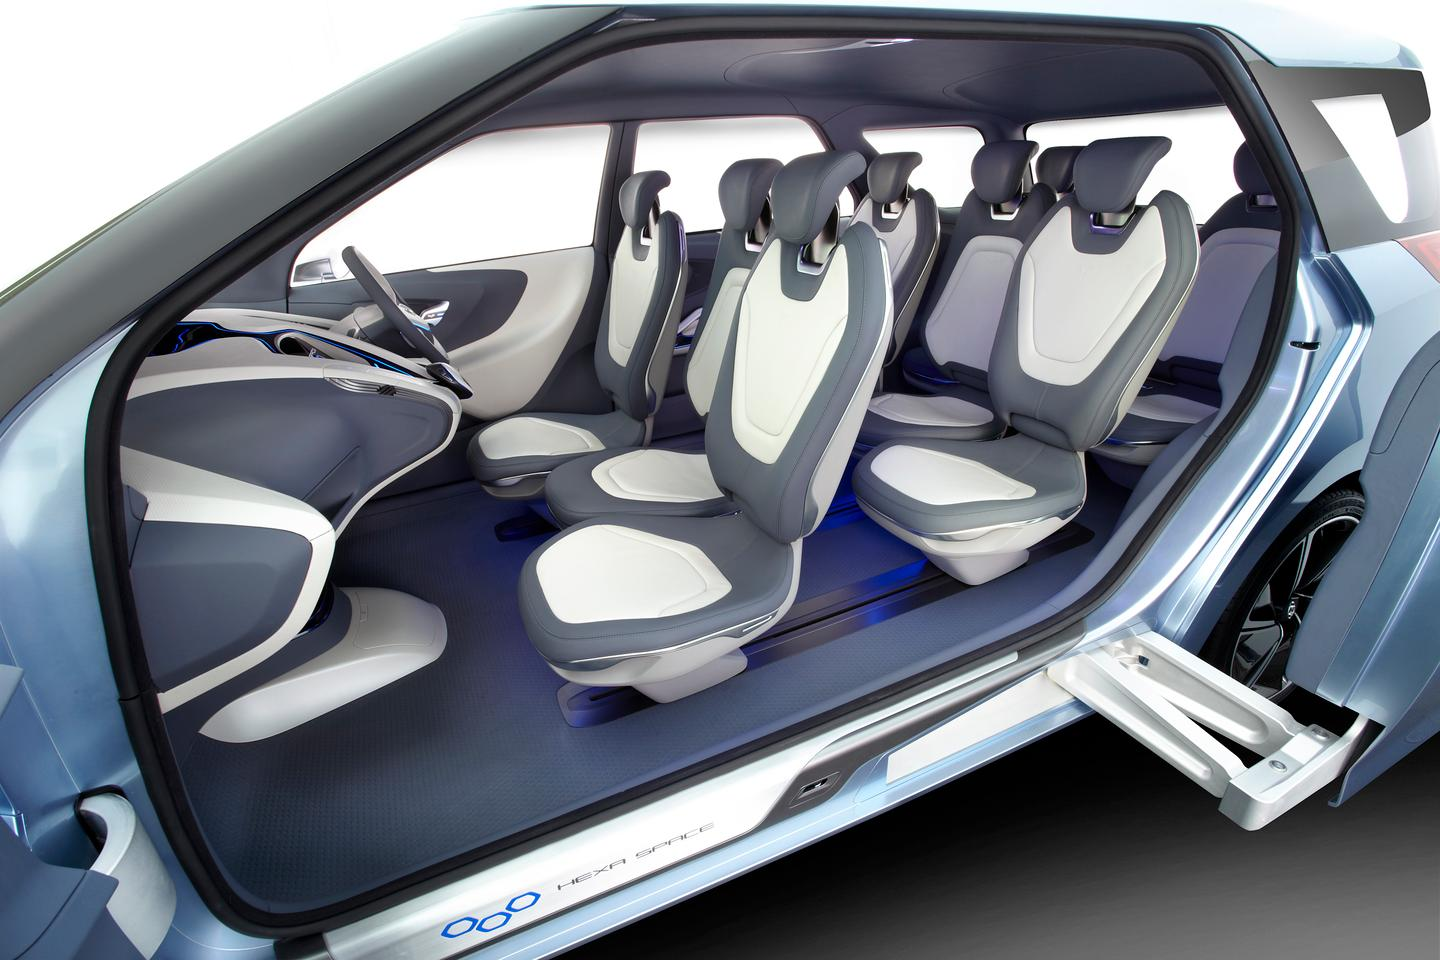 The Hexa Space concept's honeycomb-like seating layout